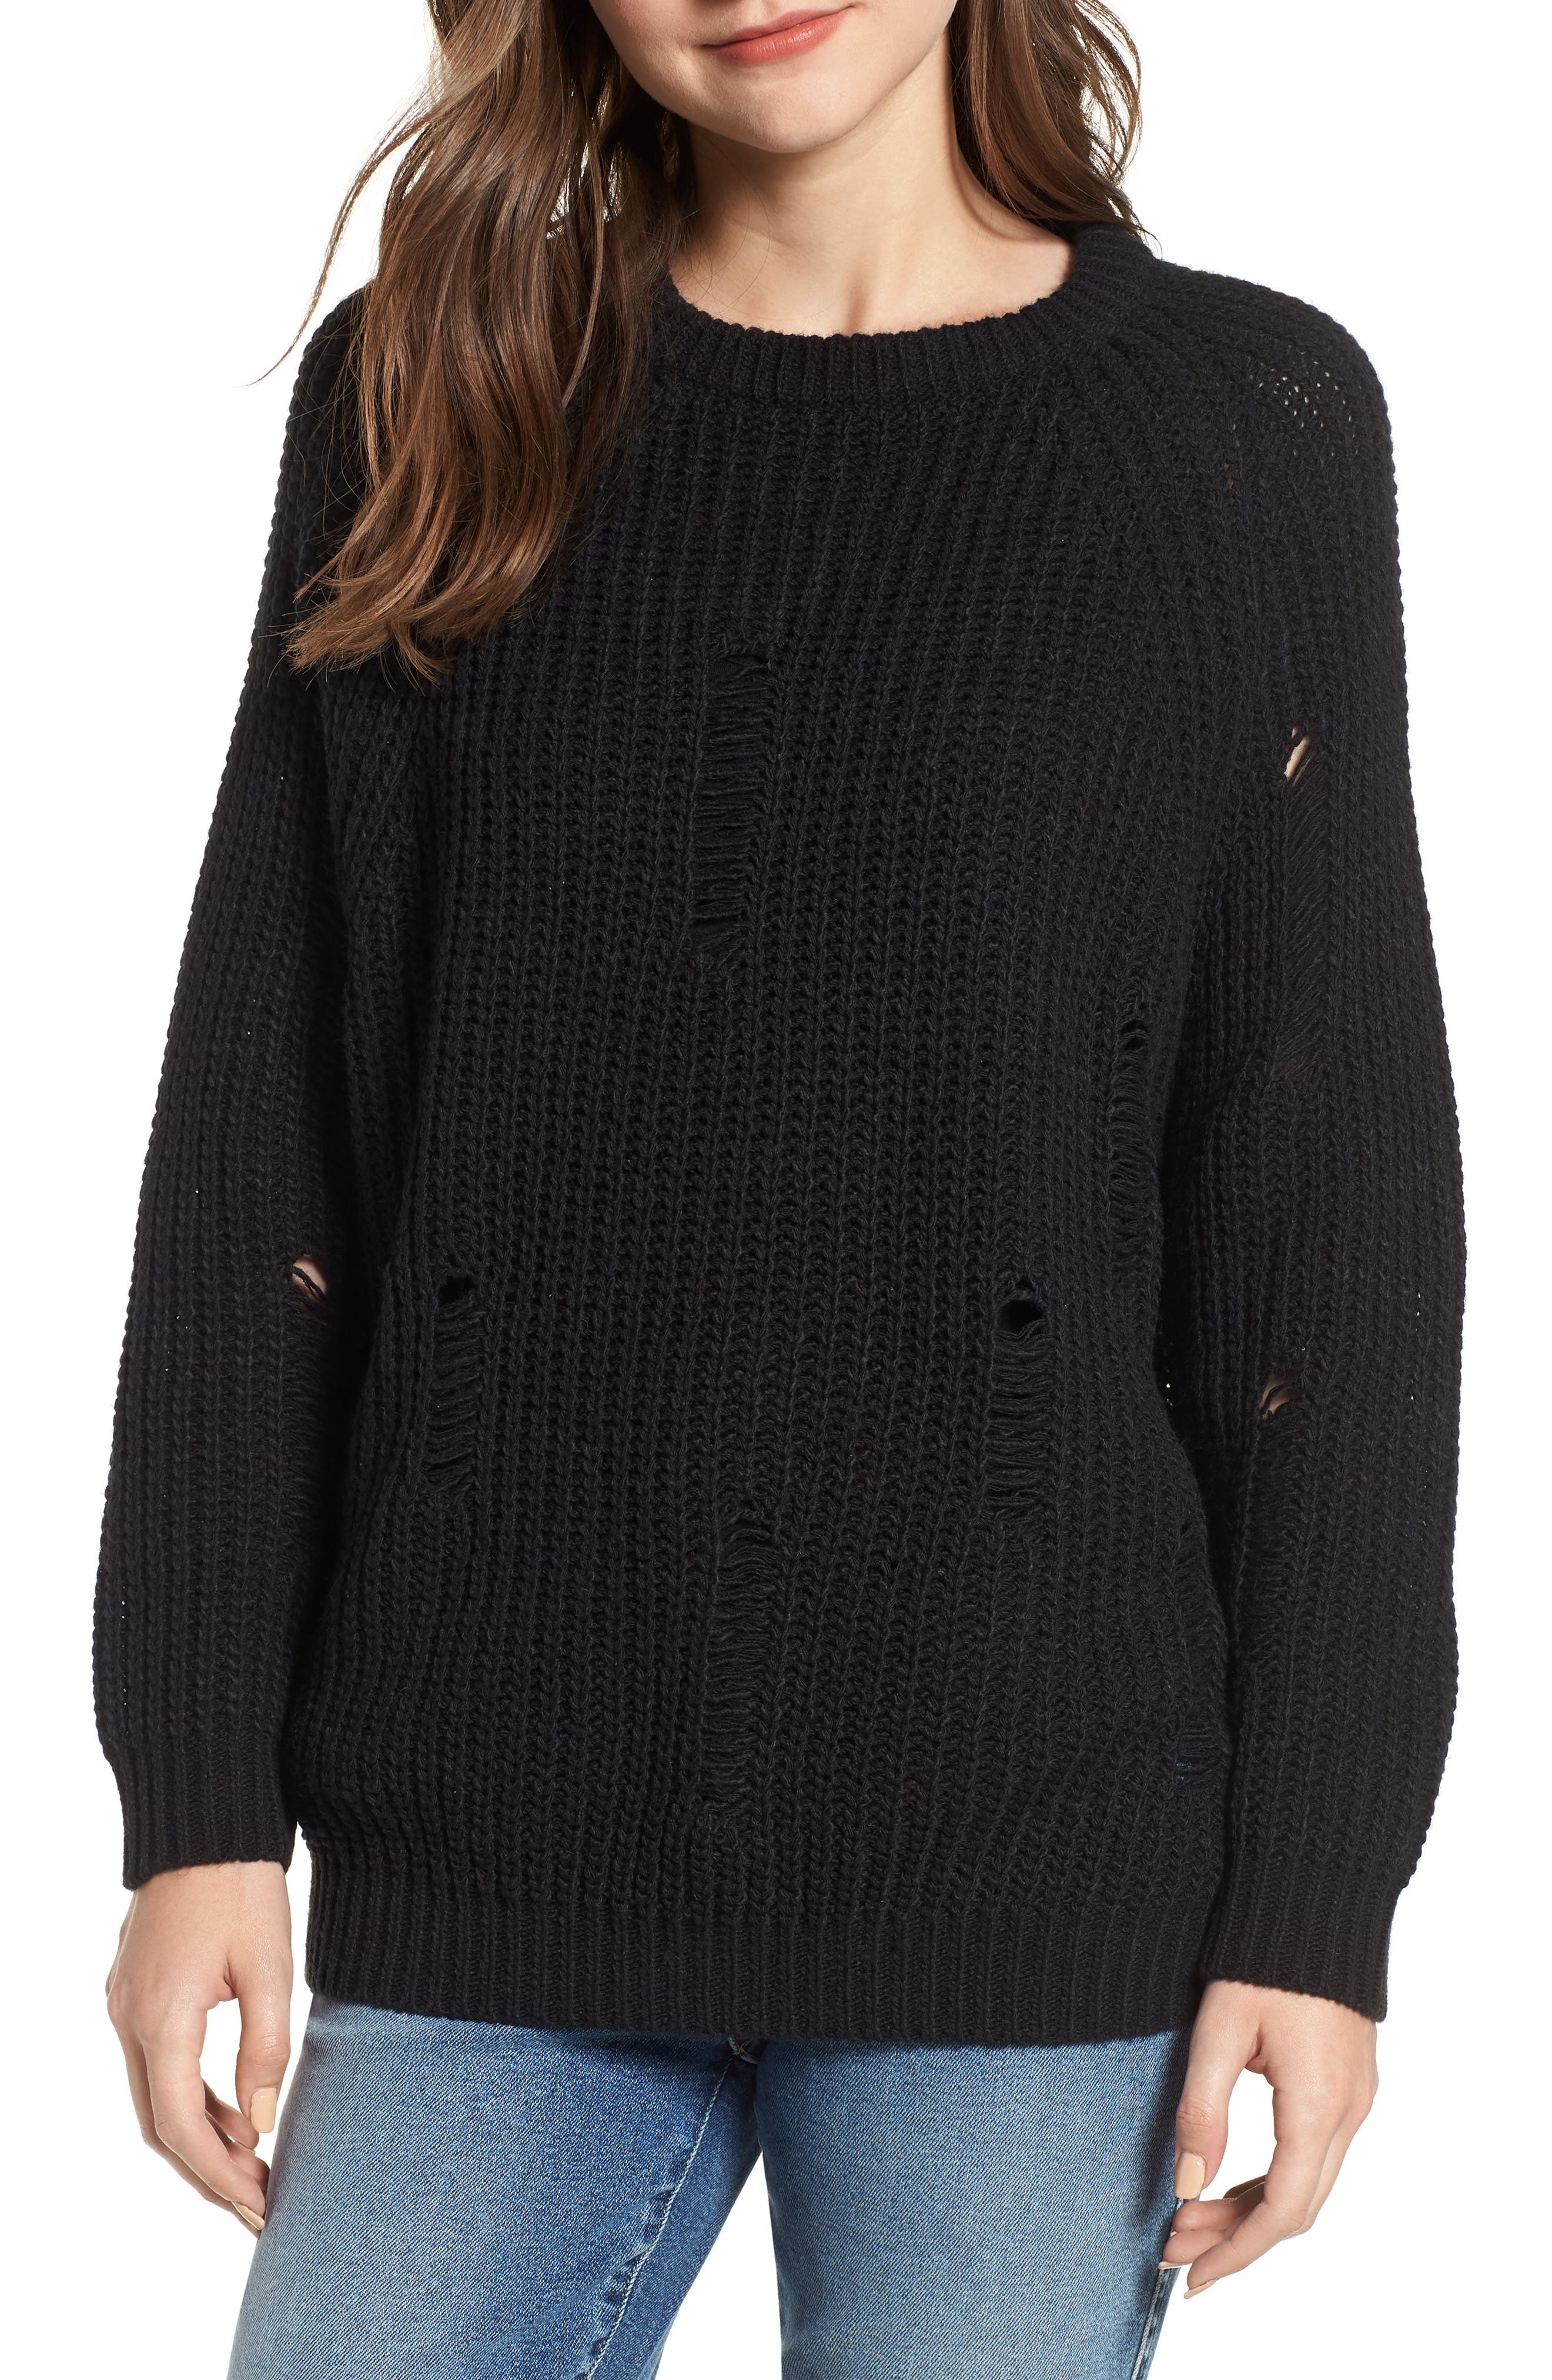 Bishop + Young Simone Distressed Shaker Sweater,                             Main thumbnail 1, color,                             BLACK